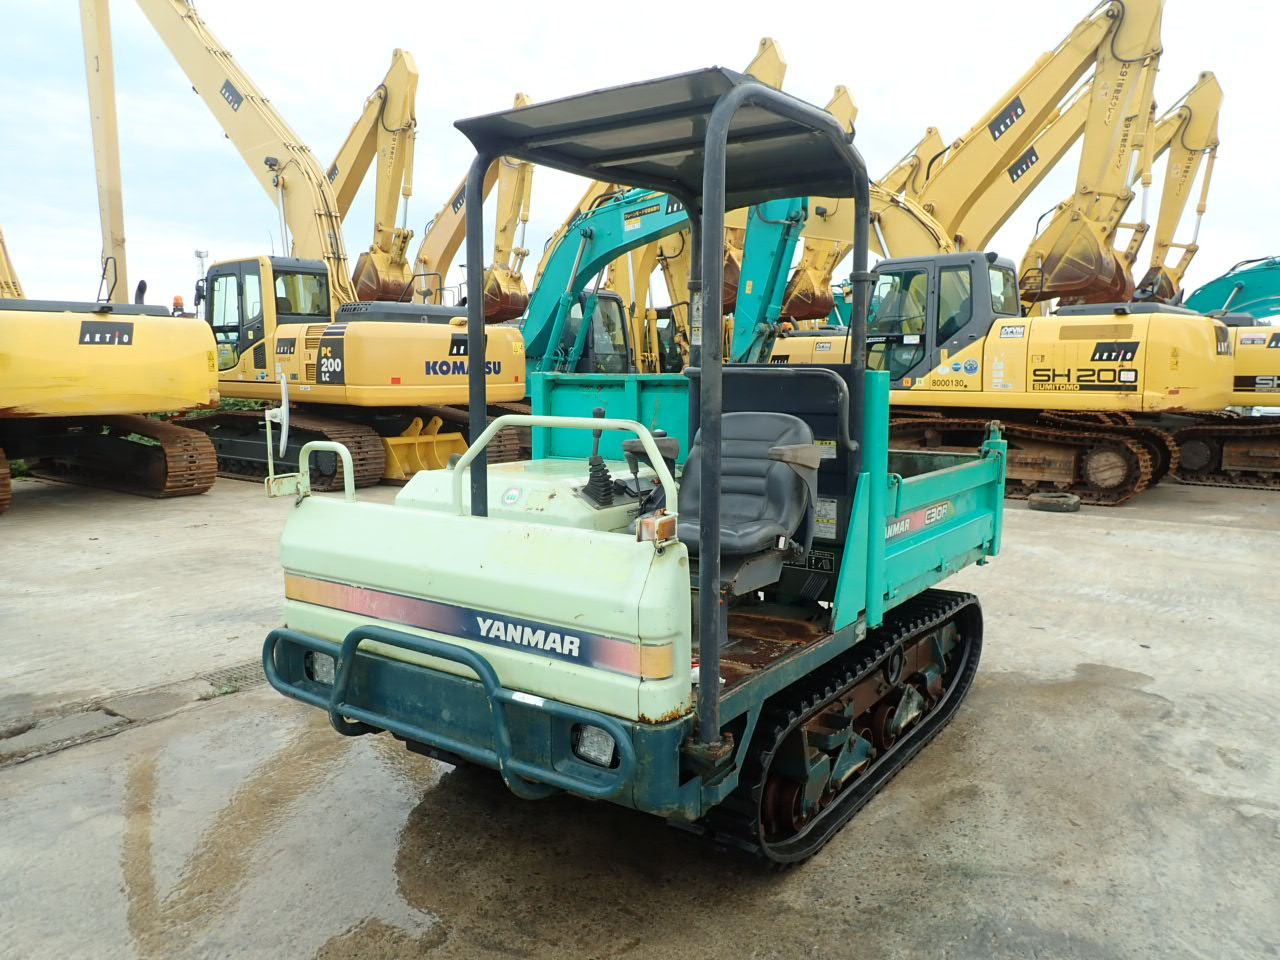 Other Construction Machineries YANMAR C30R-2